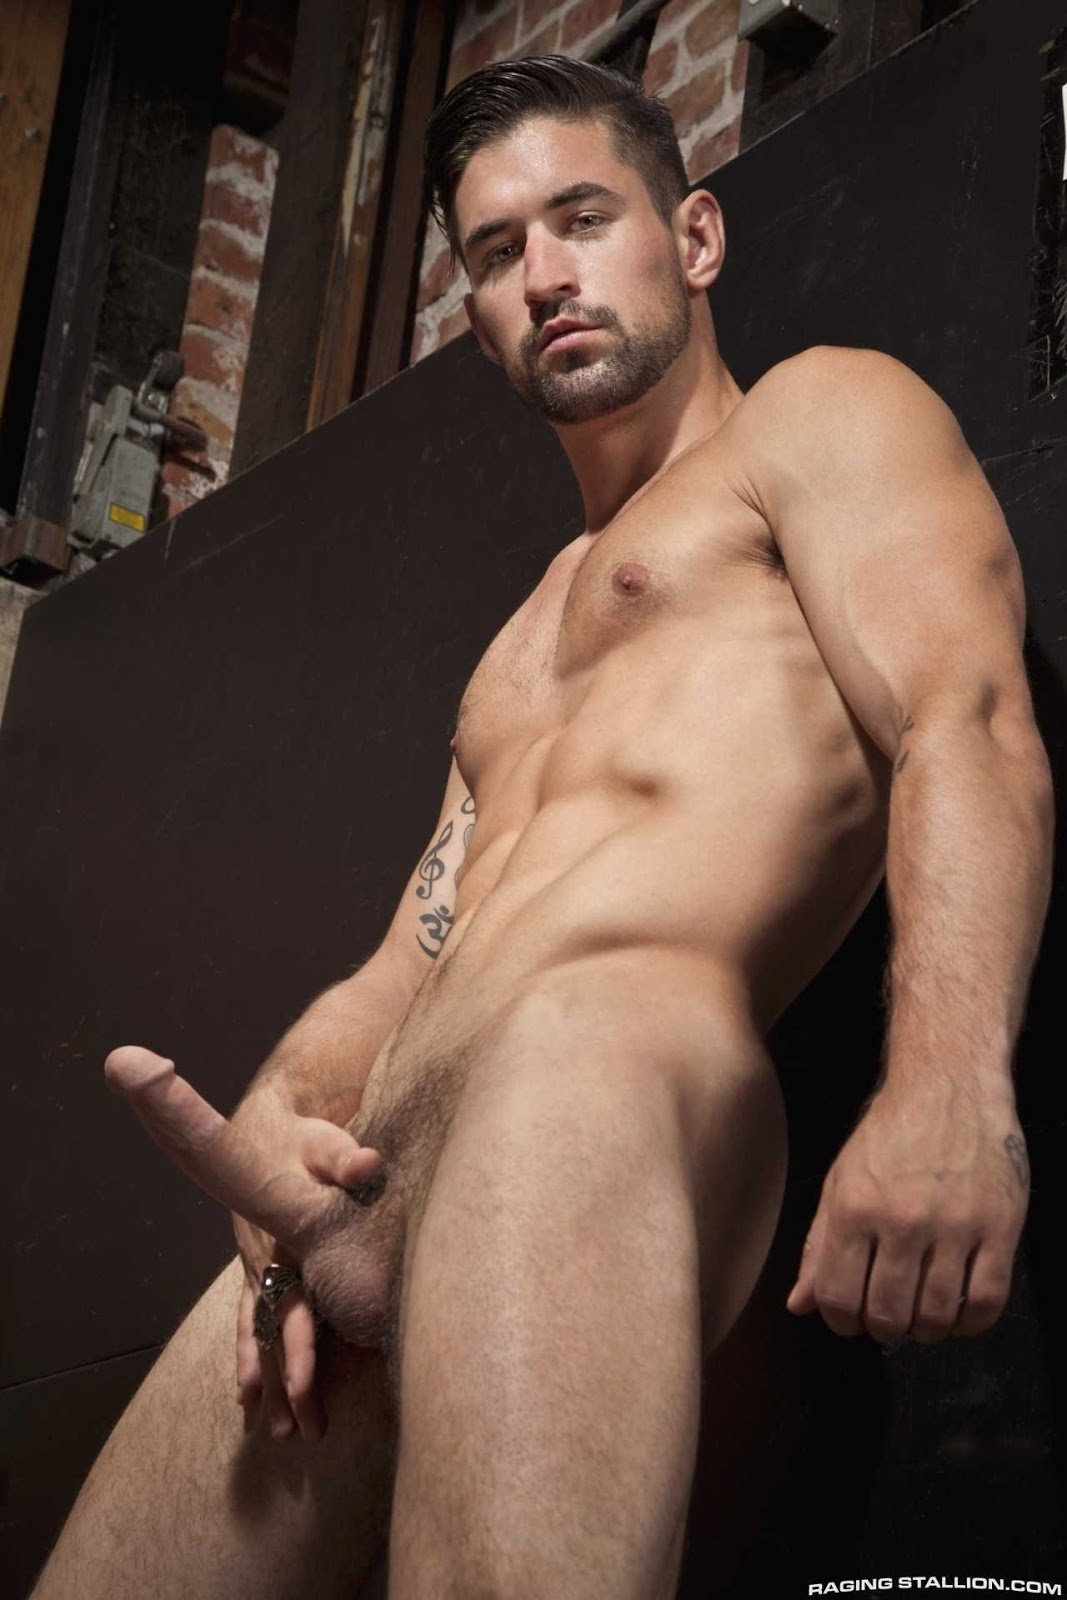 Naked gallery male model